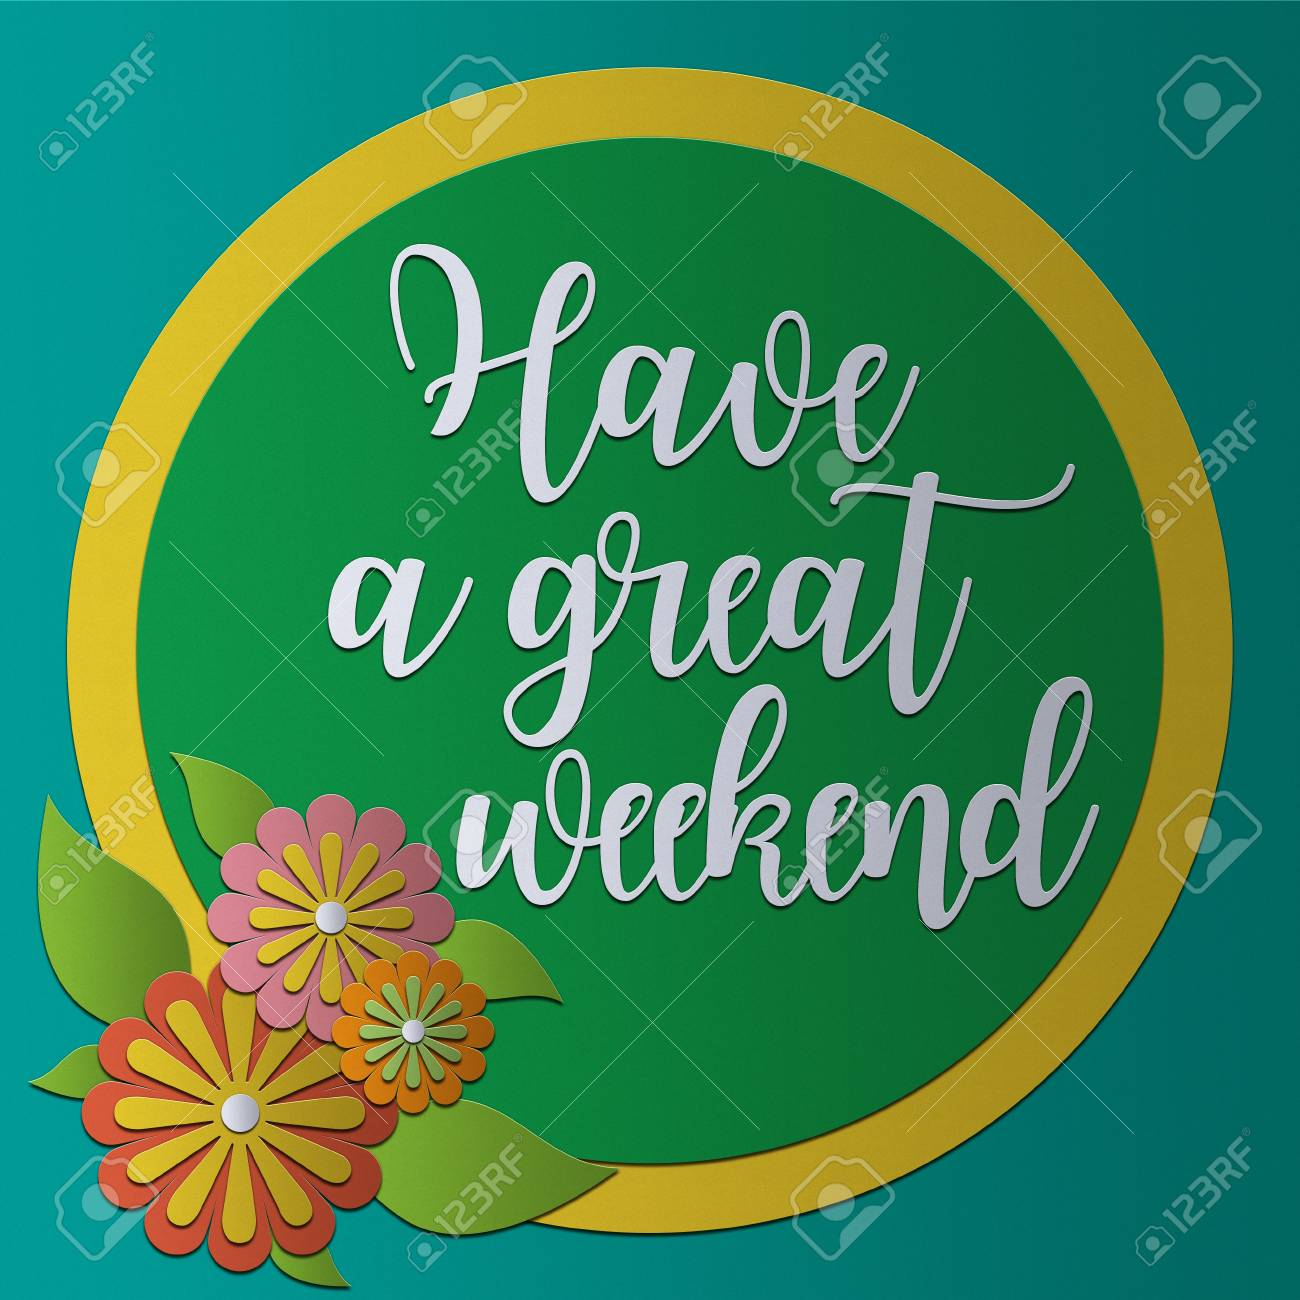 Have A Great Weekend Card Papercraft Vintage Style Stock Photo